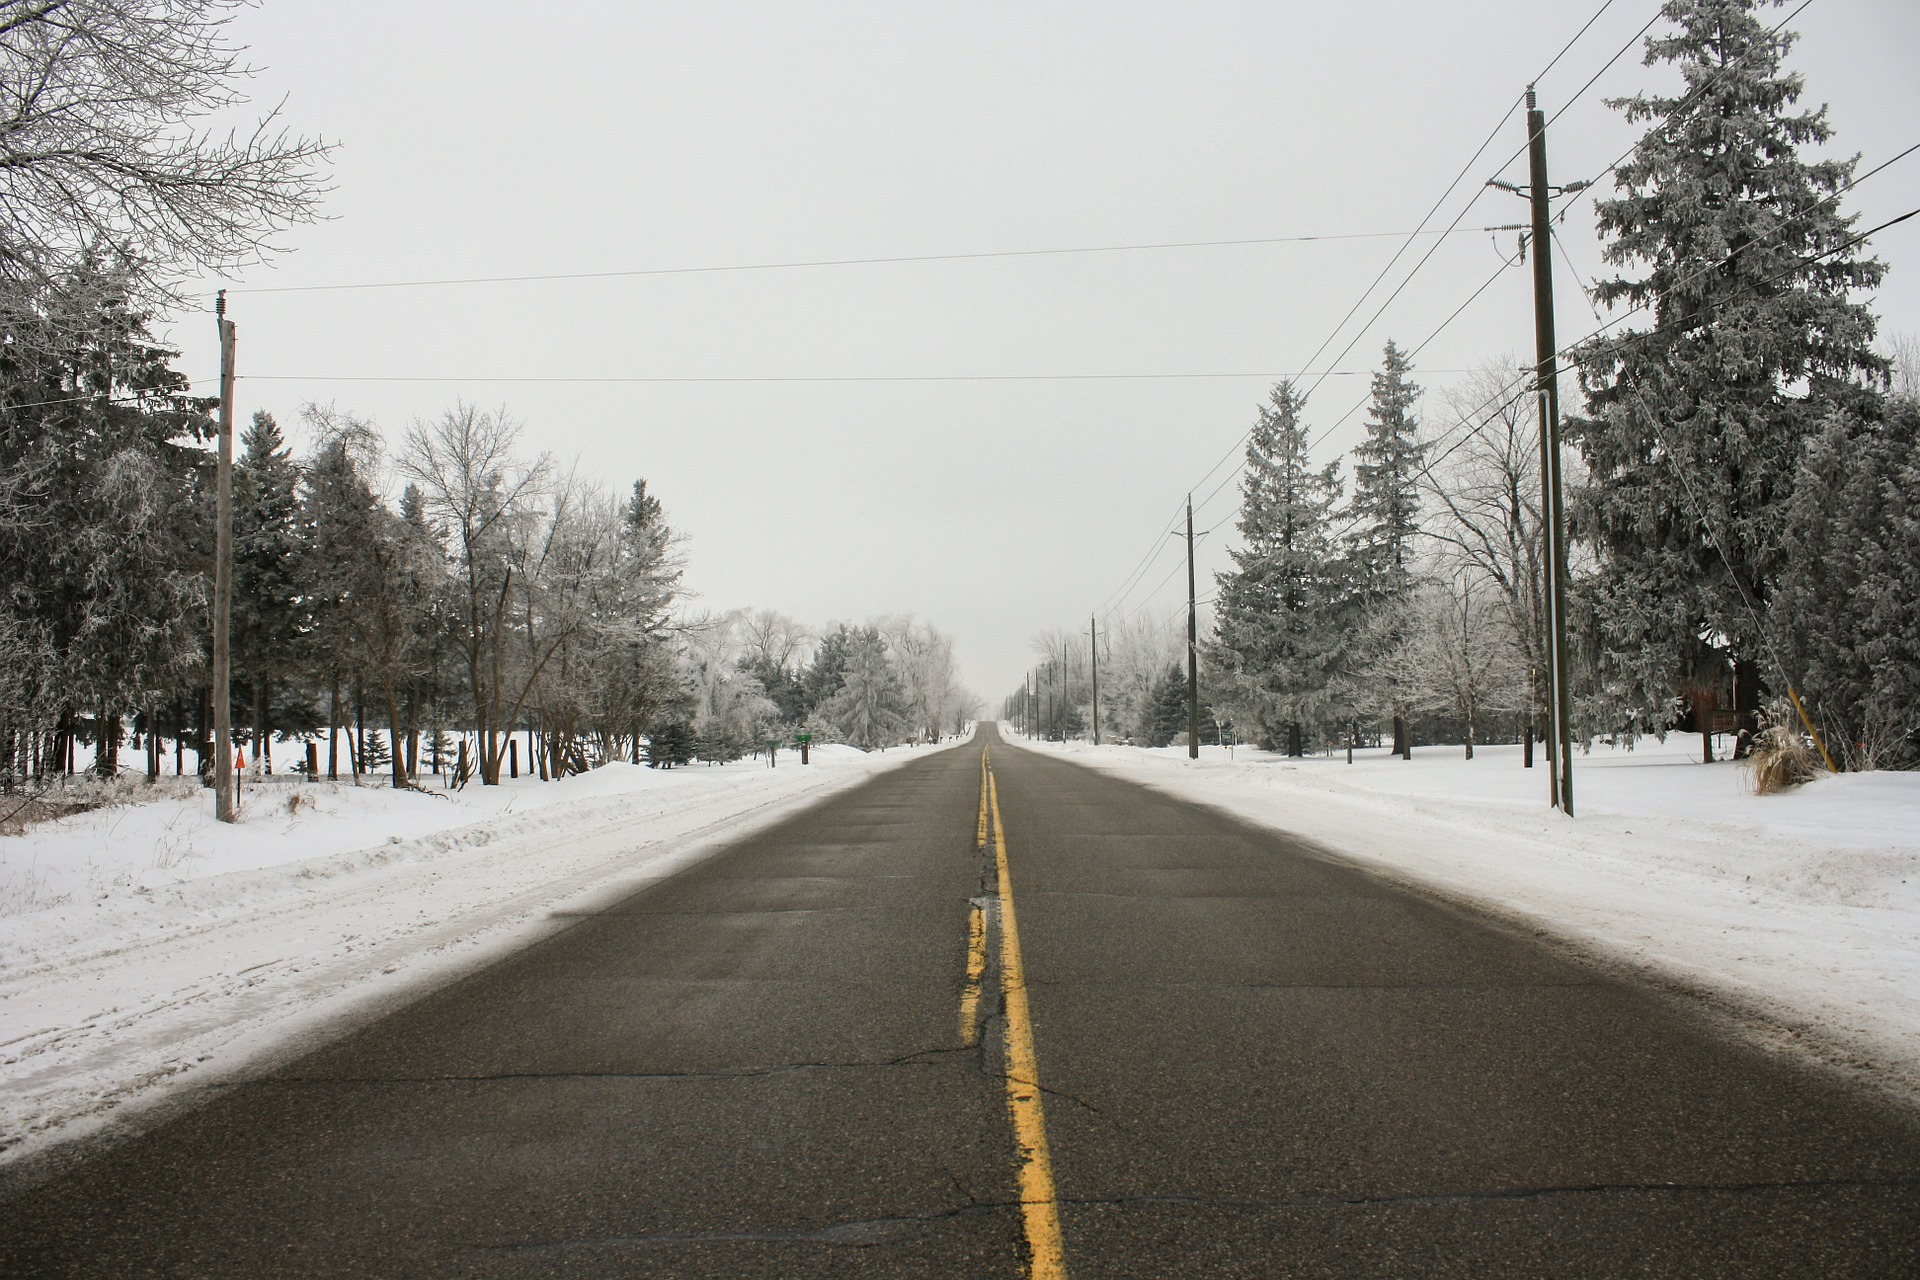 Winter Driving: How do you Stay Safe?